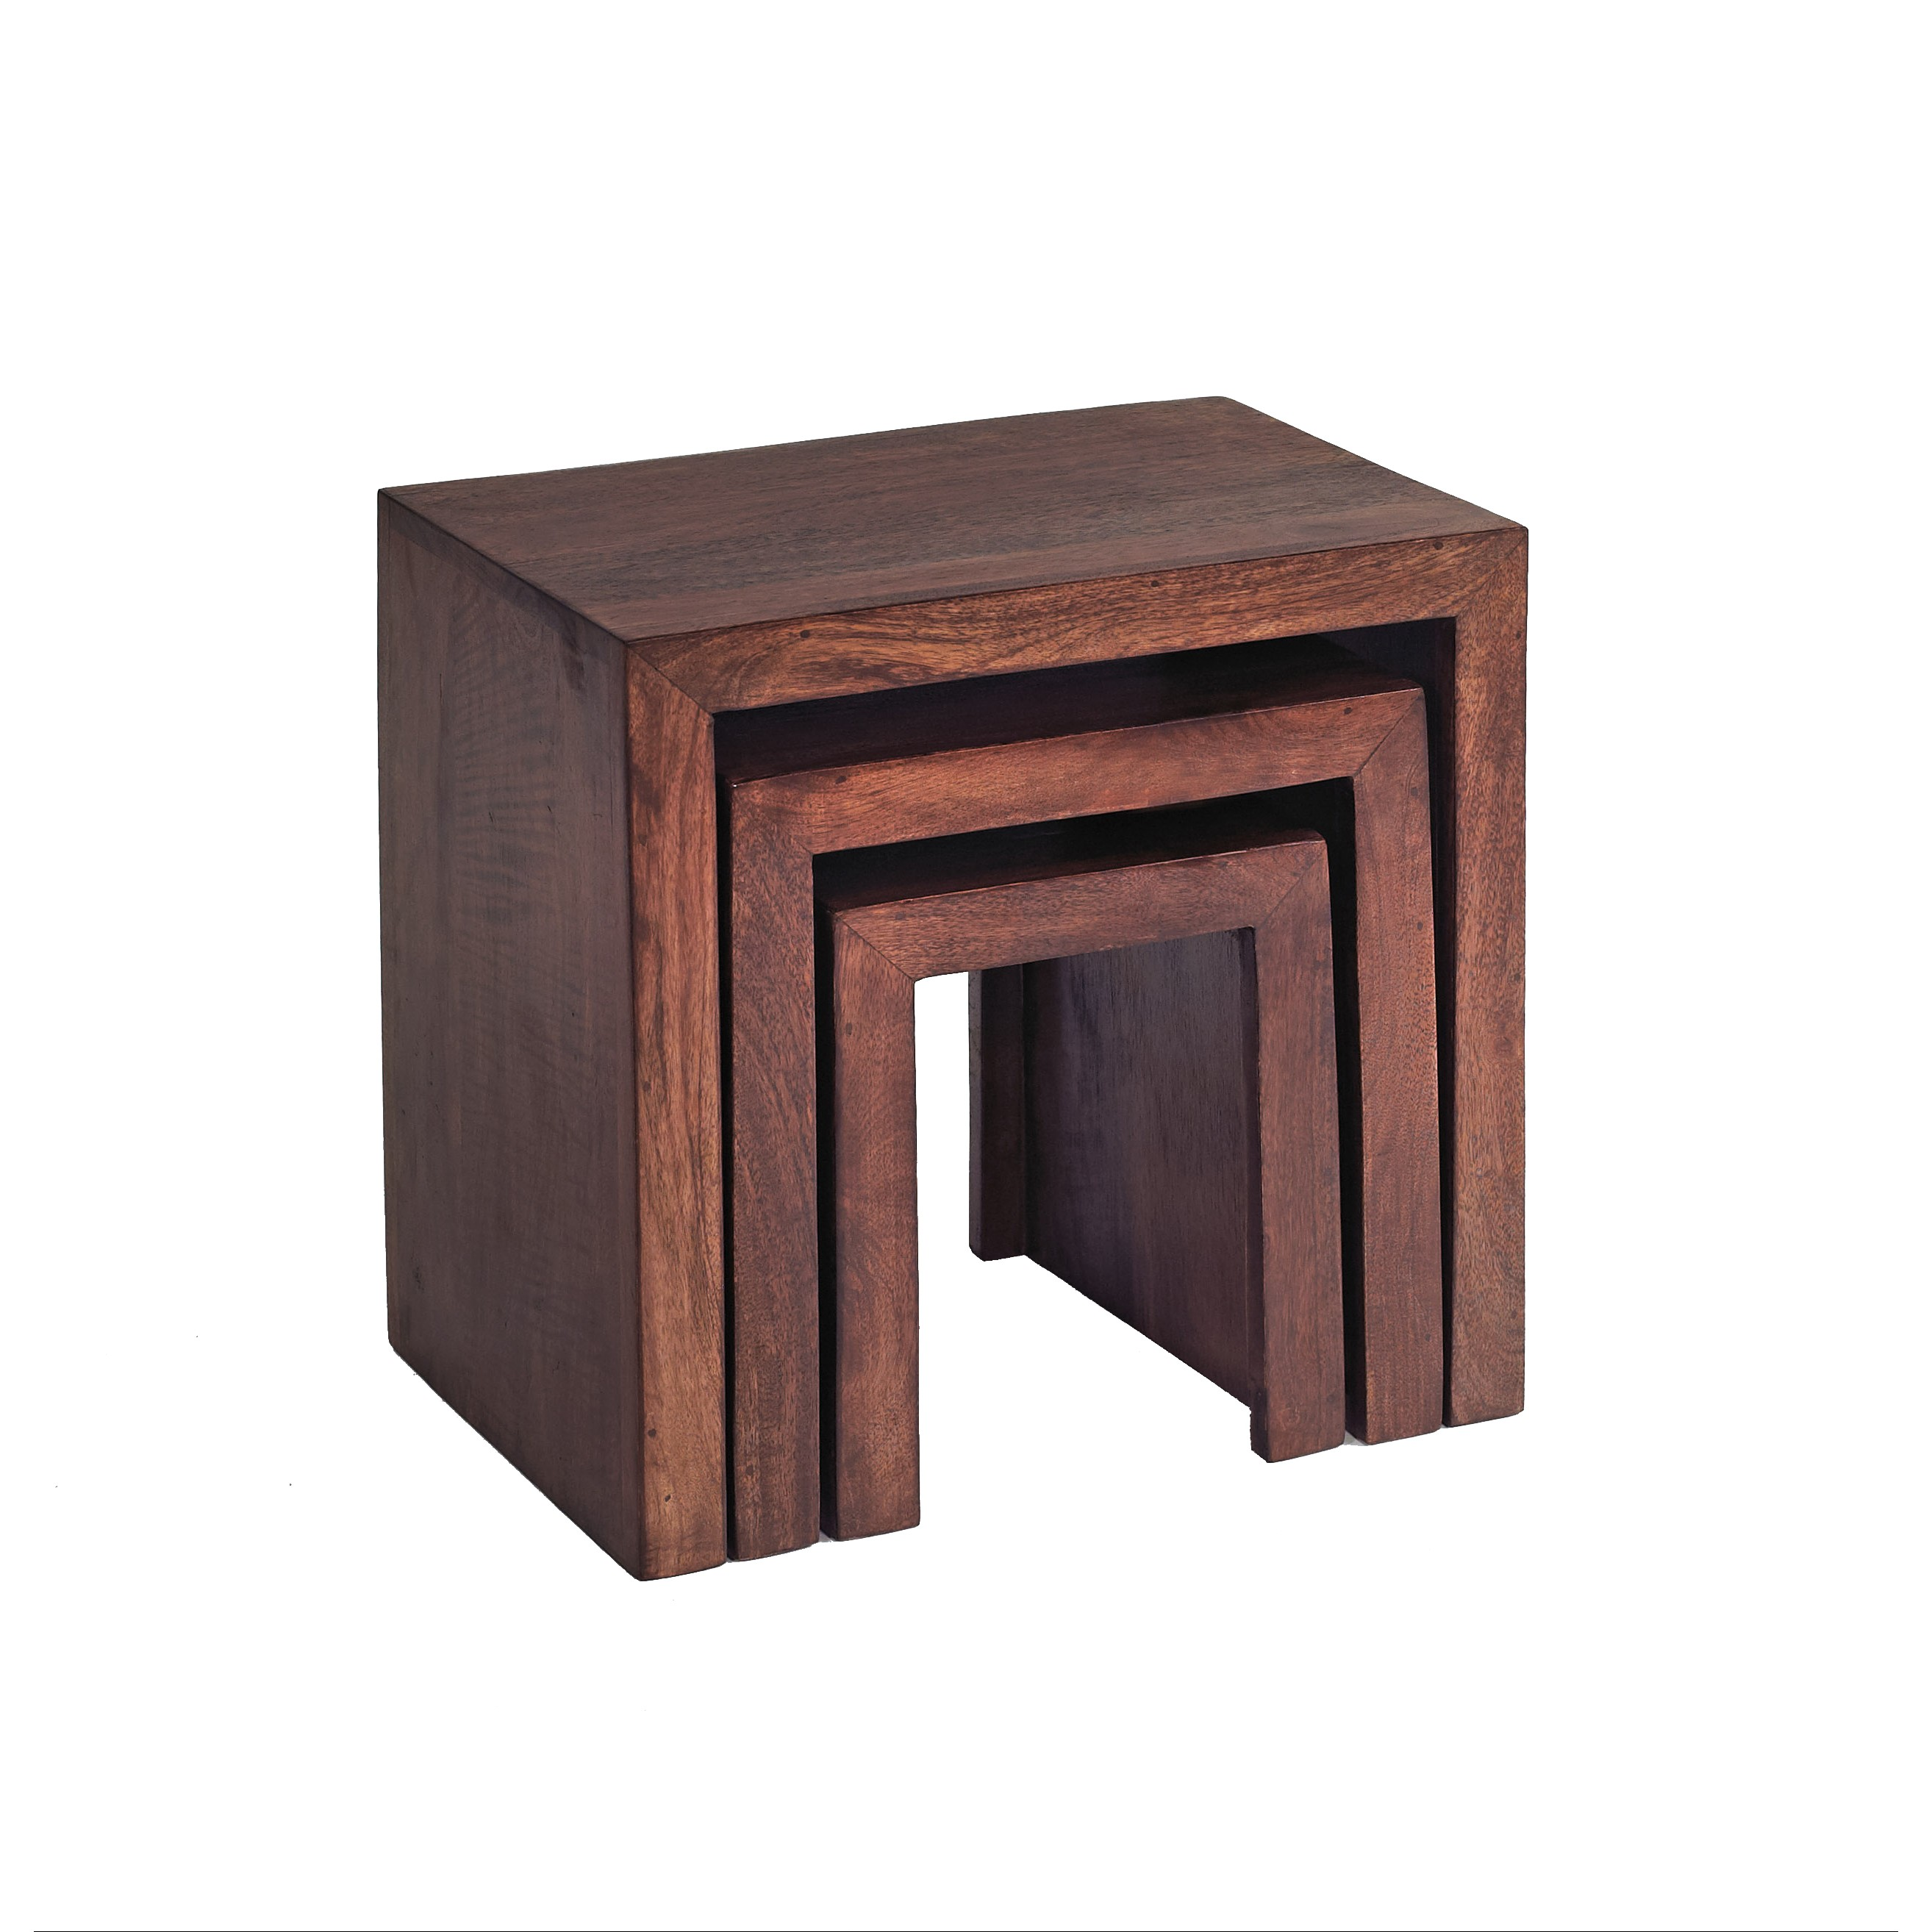 Dakota Mango Nest of 3 Tables - Verty Indian Furniture